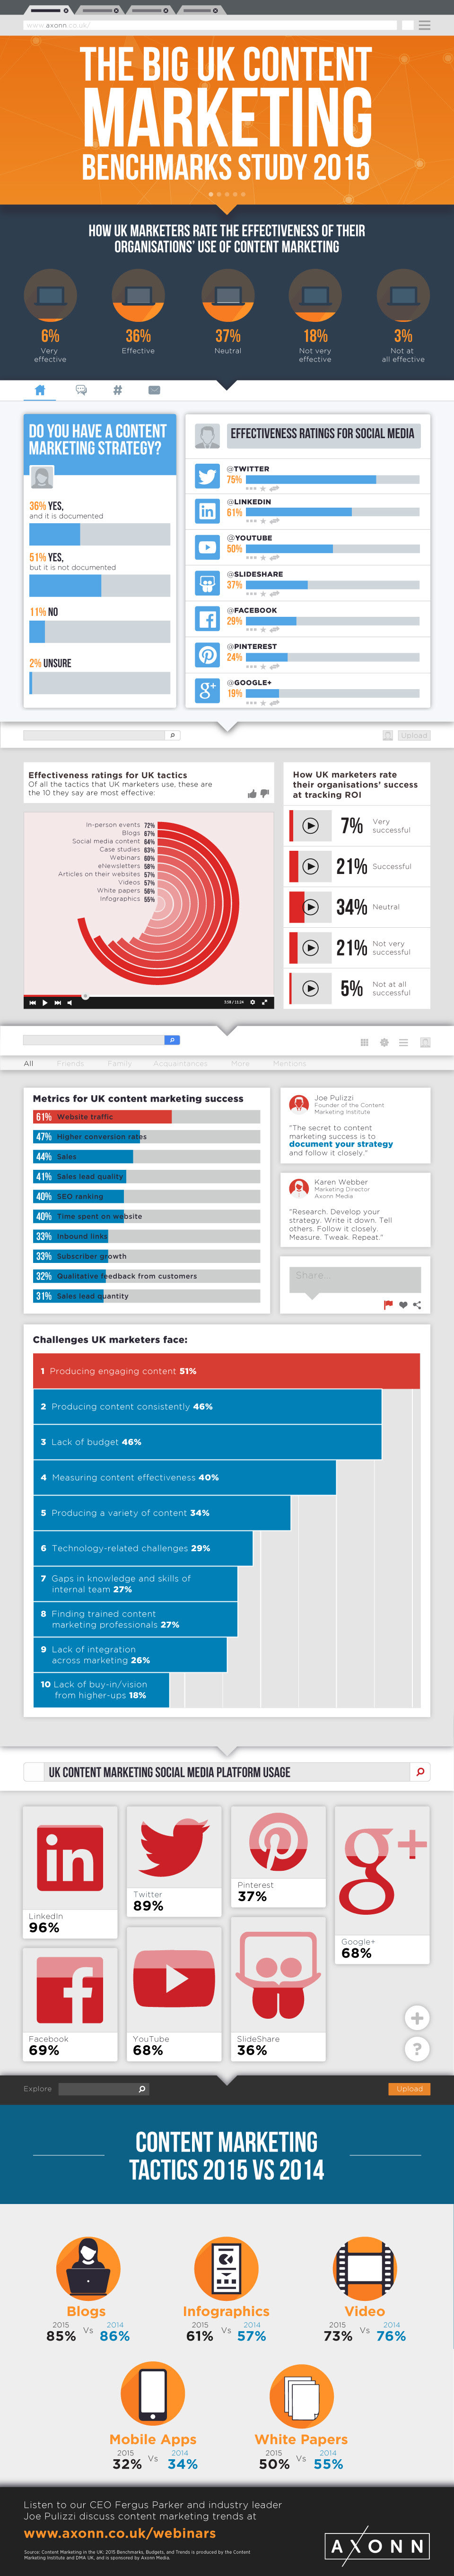 Infographic: The Big UK Content Marketing Benchmarks Study 2015